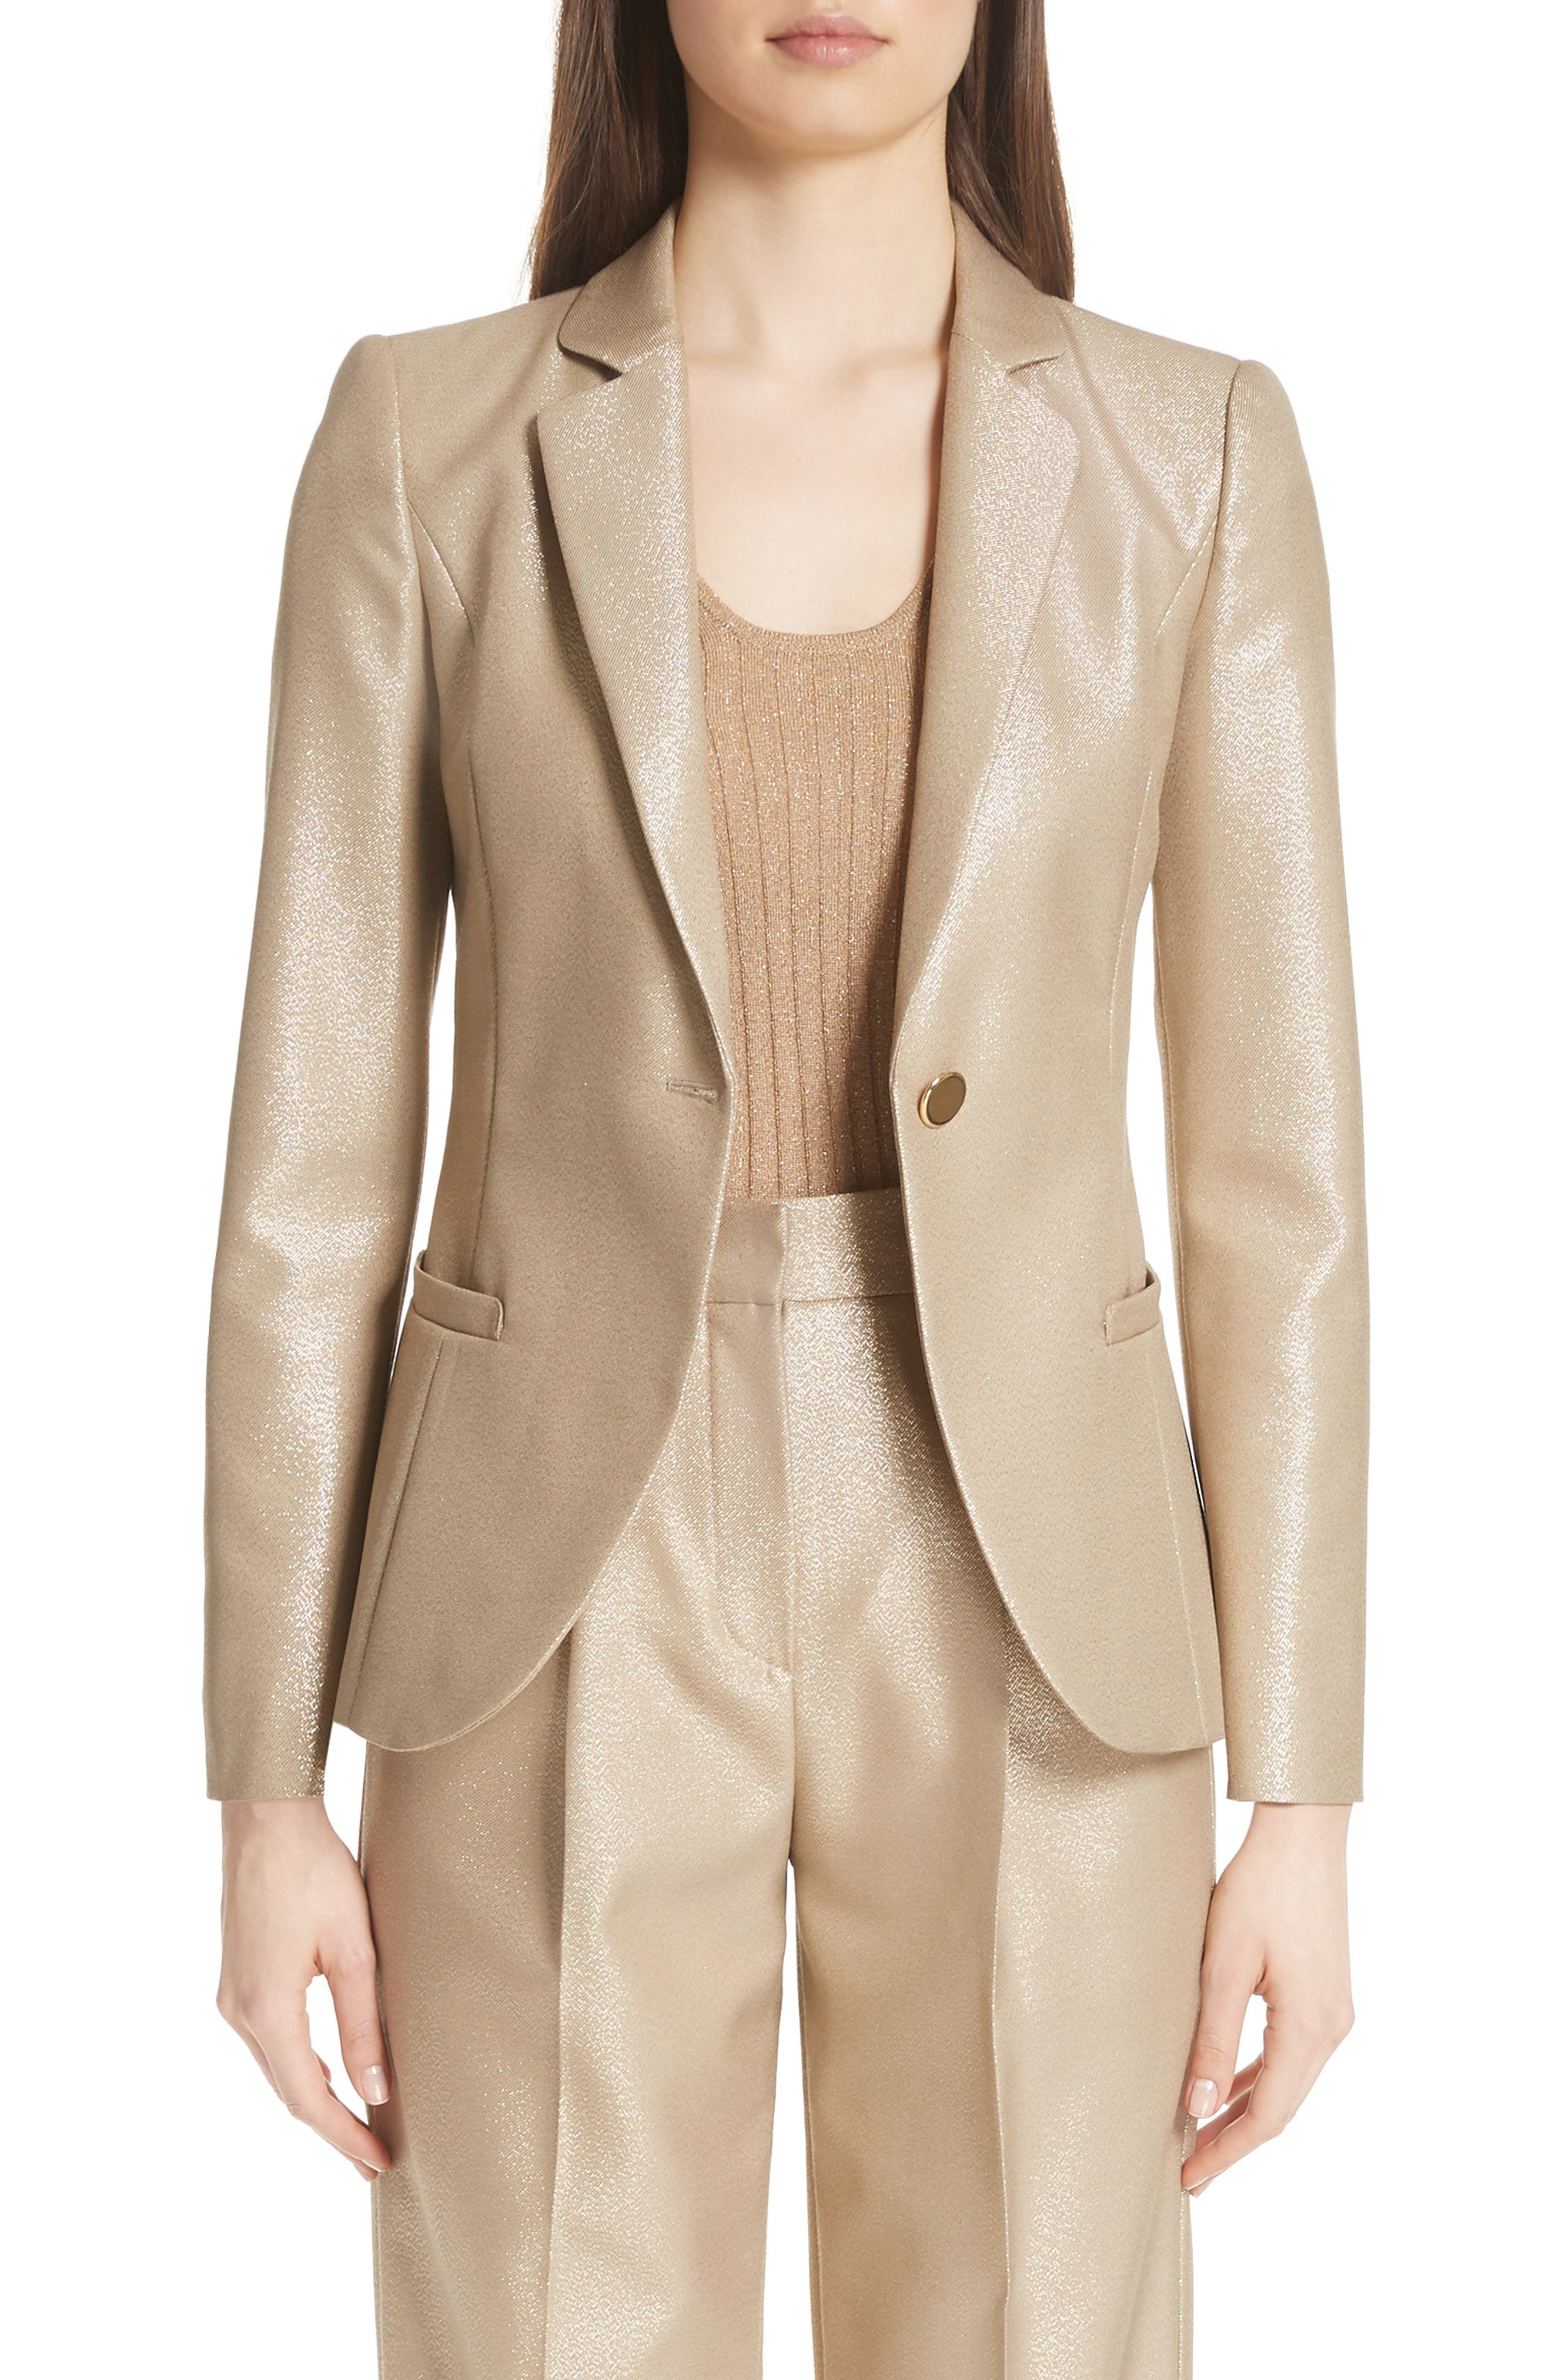 One-Button Metallic Wool Classic Jacket in Gold